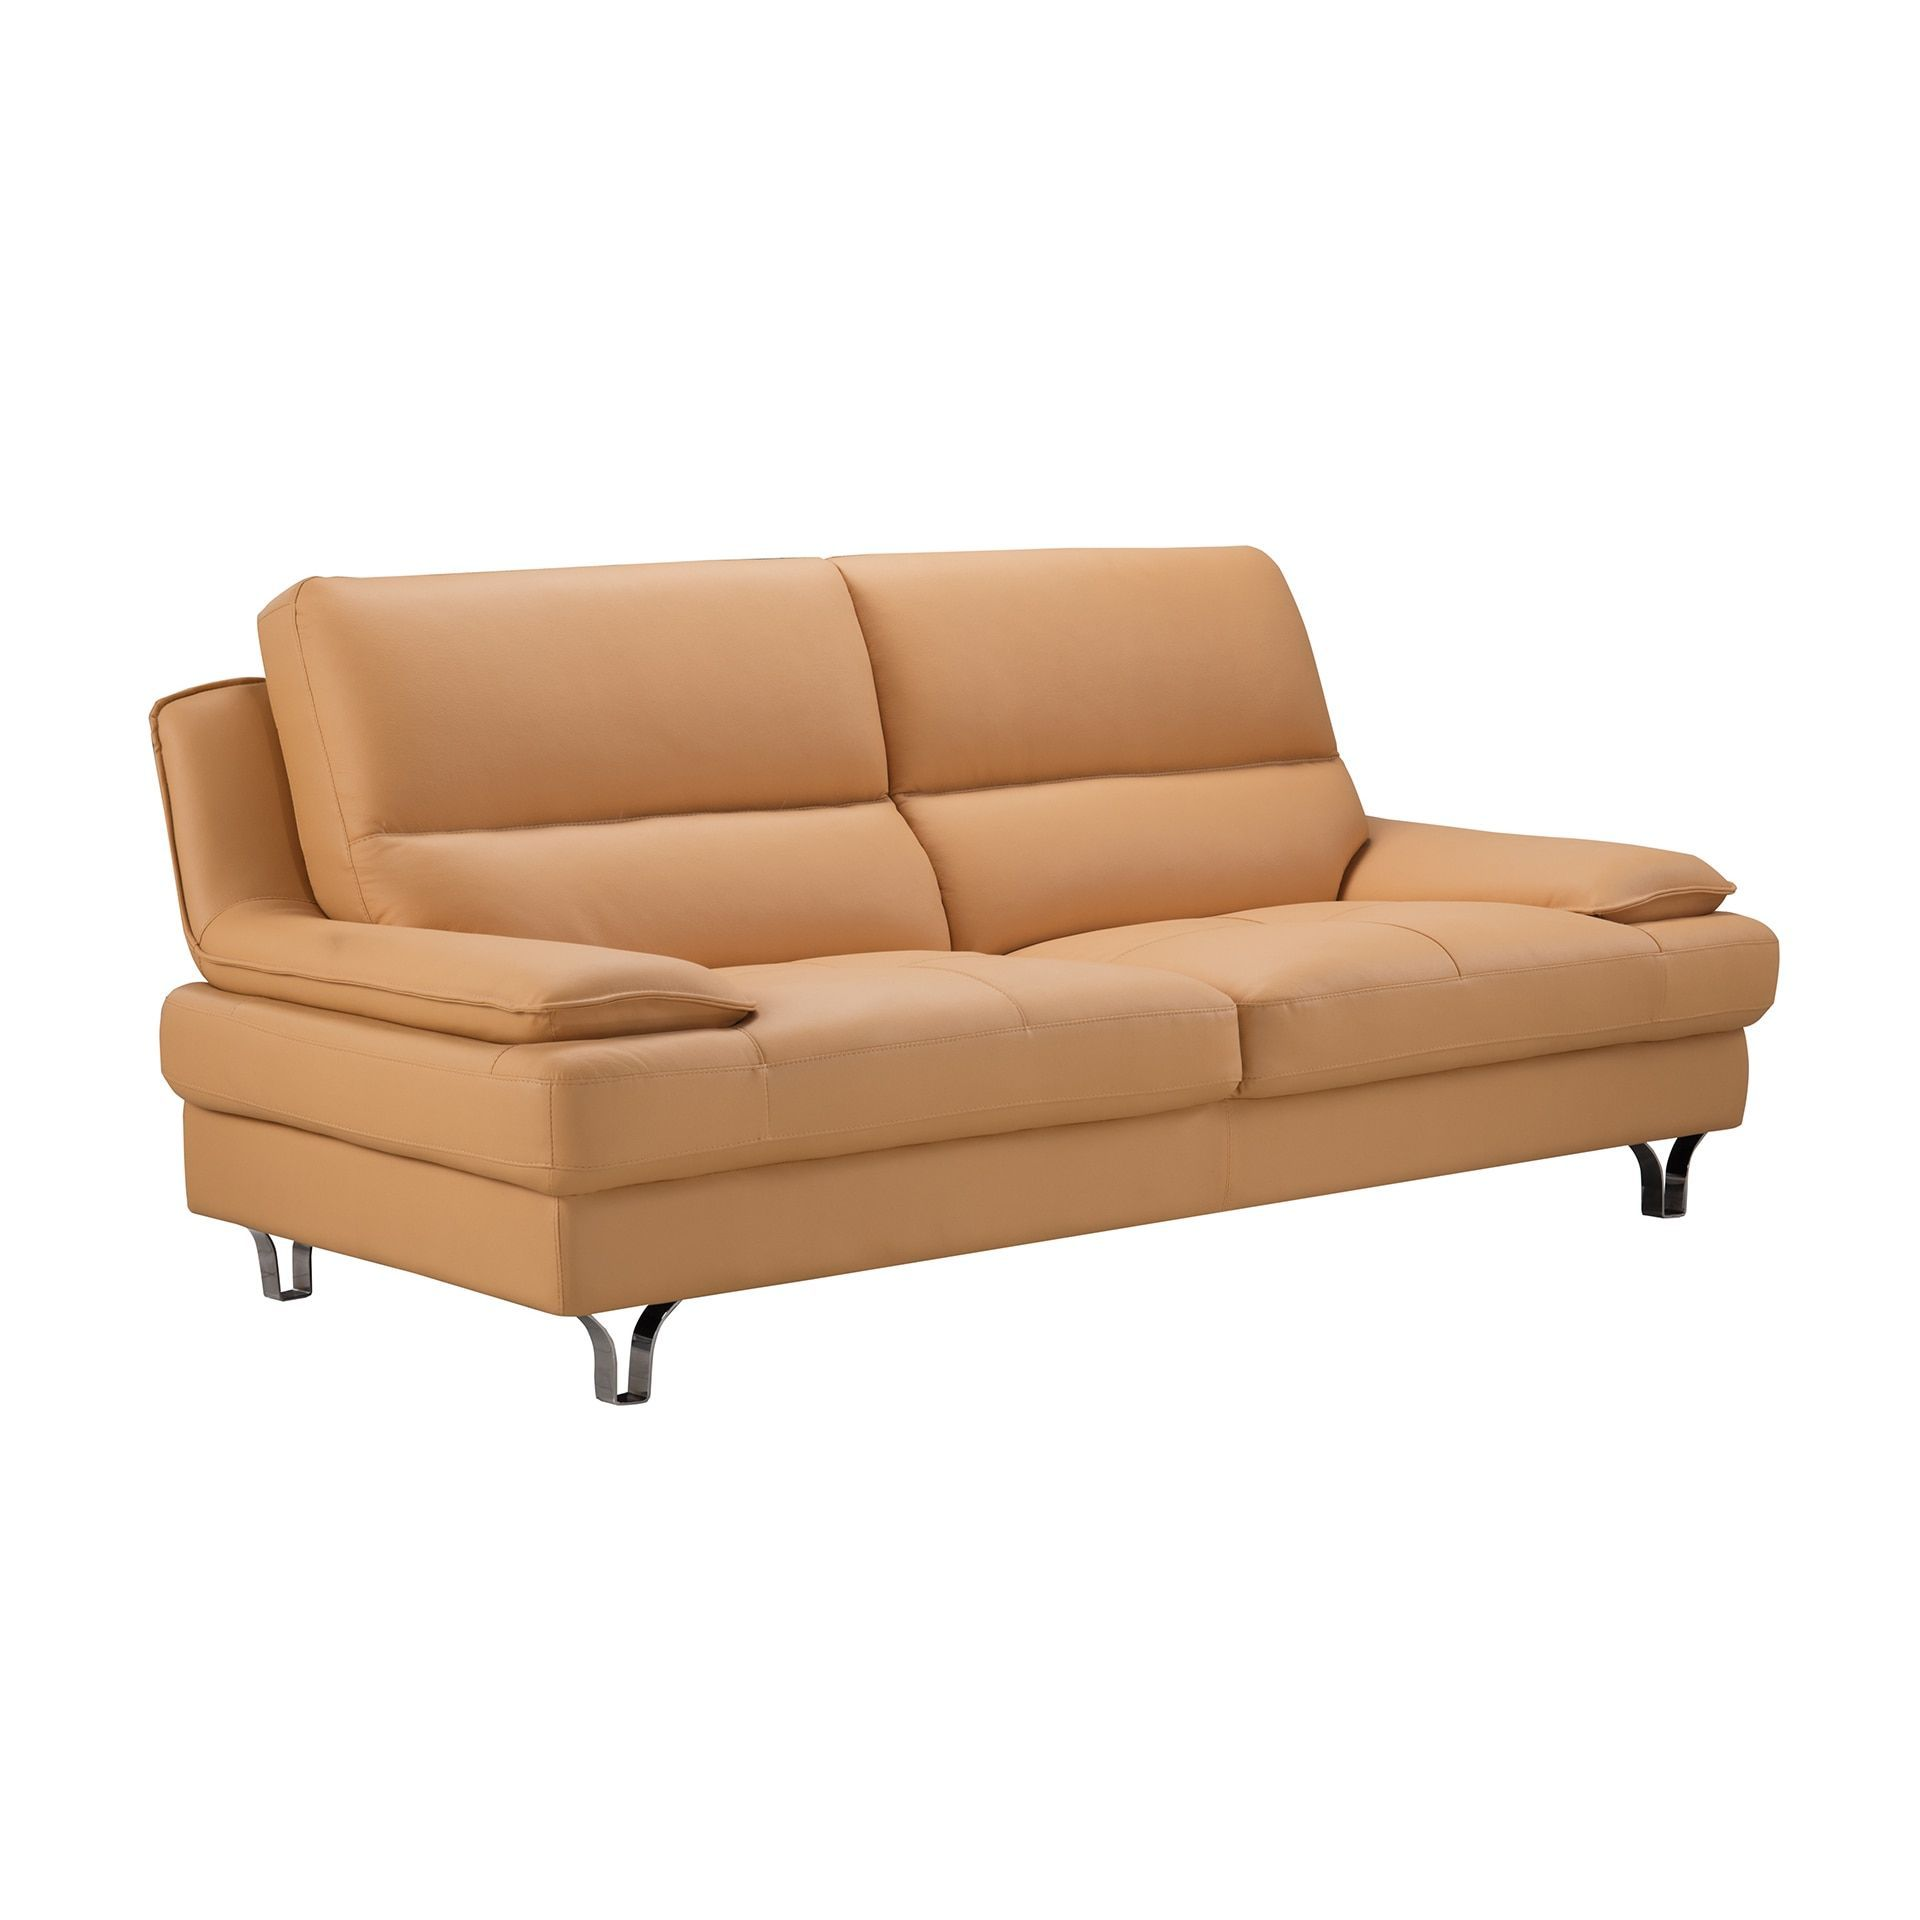 American Eagle Yellow Genuine Leather Sofa